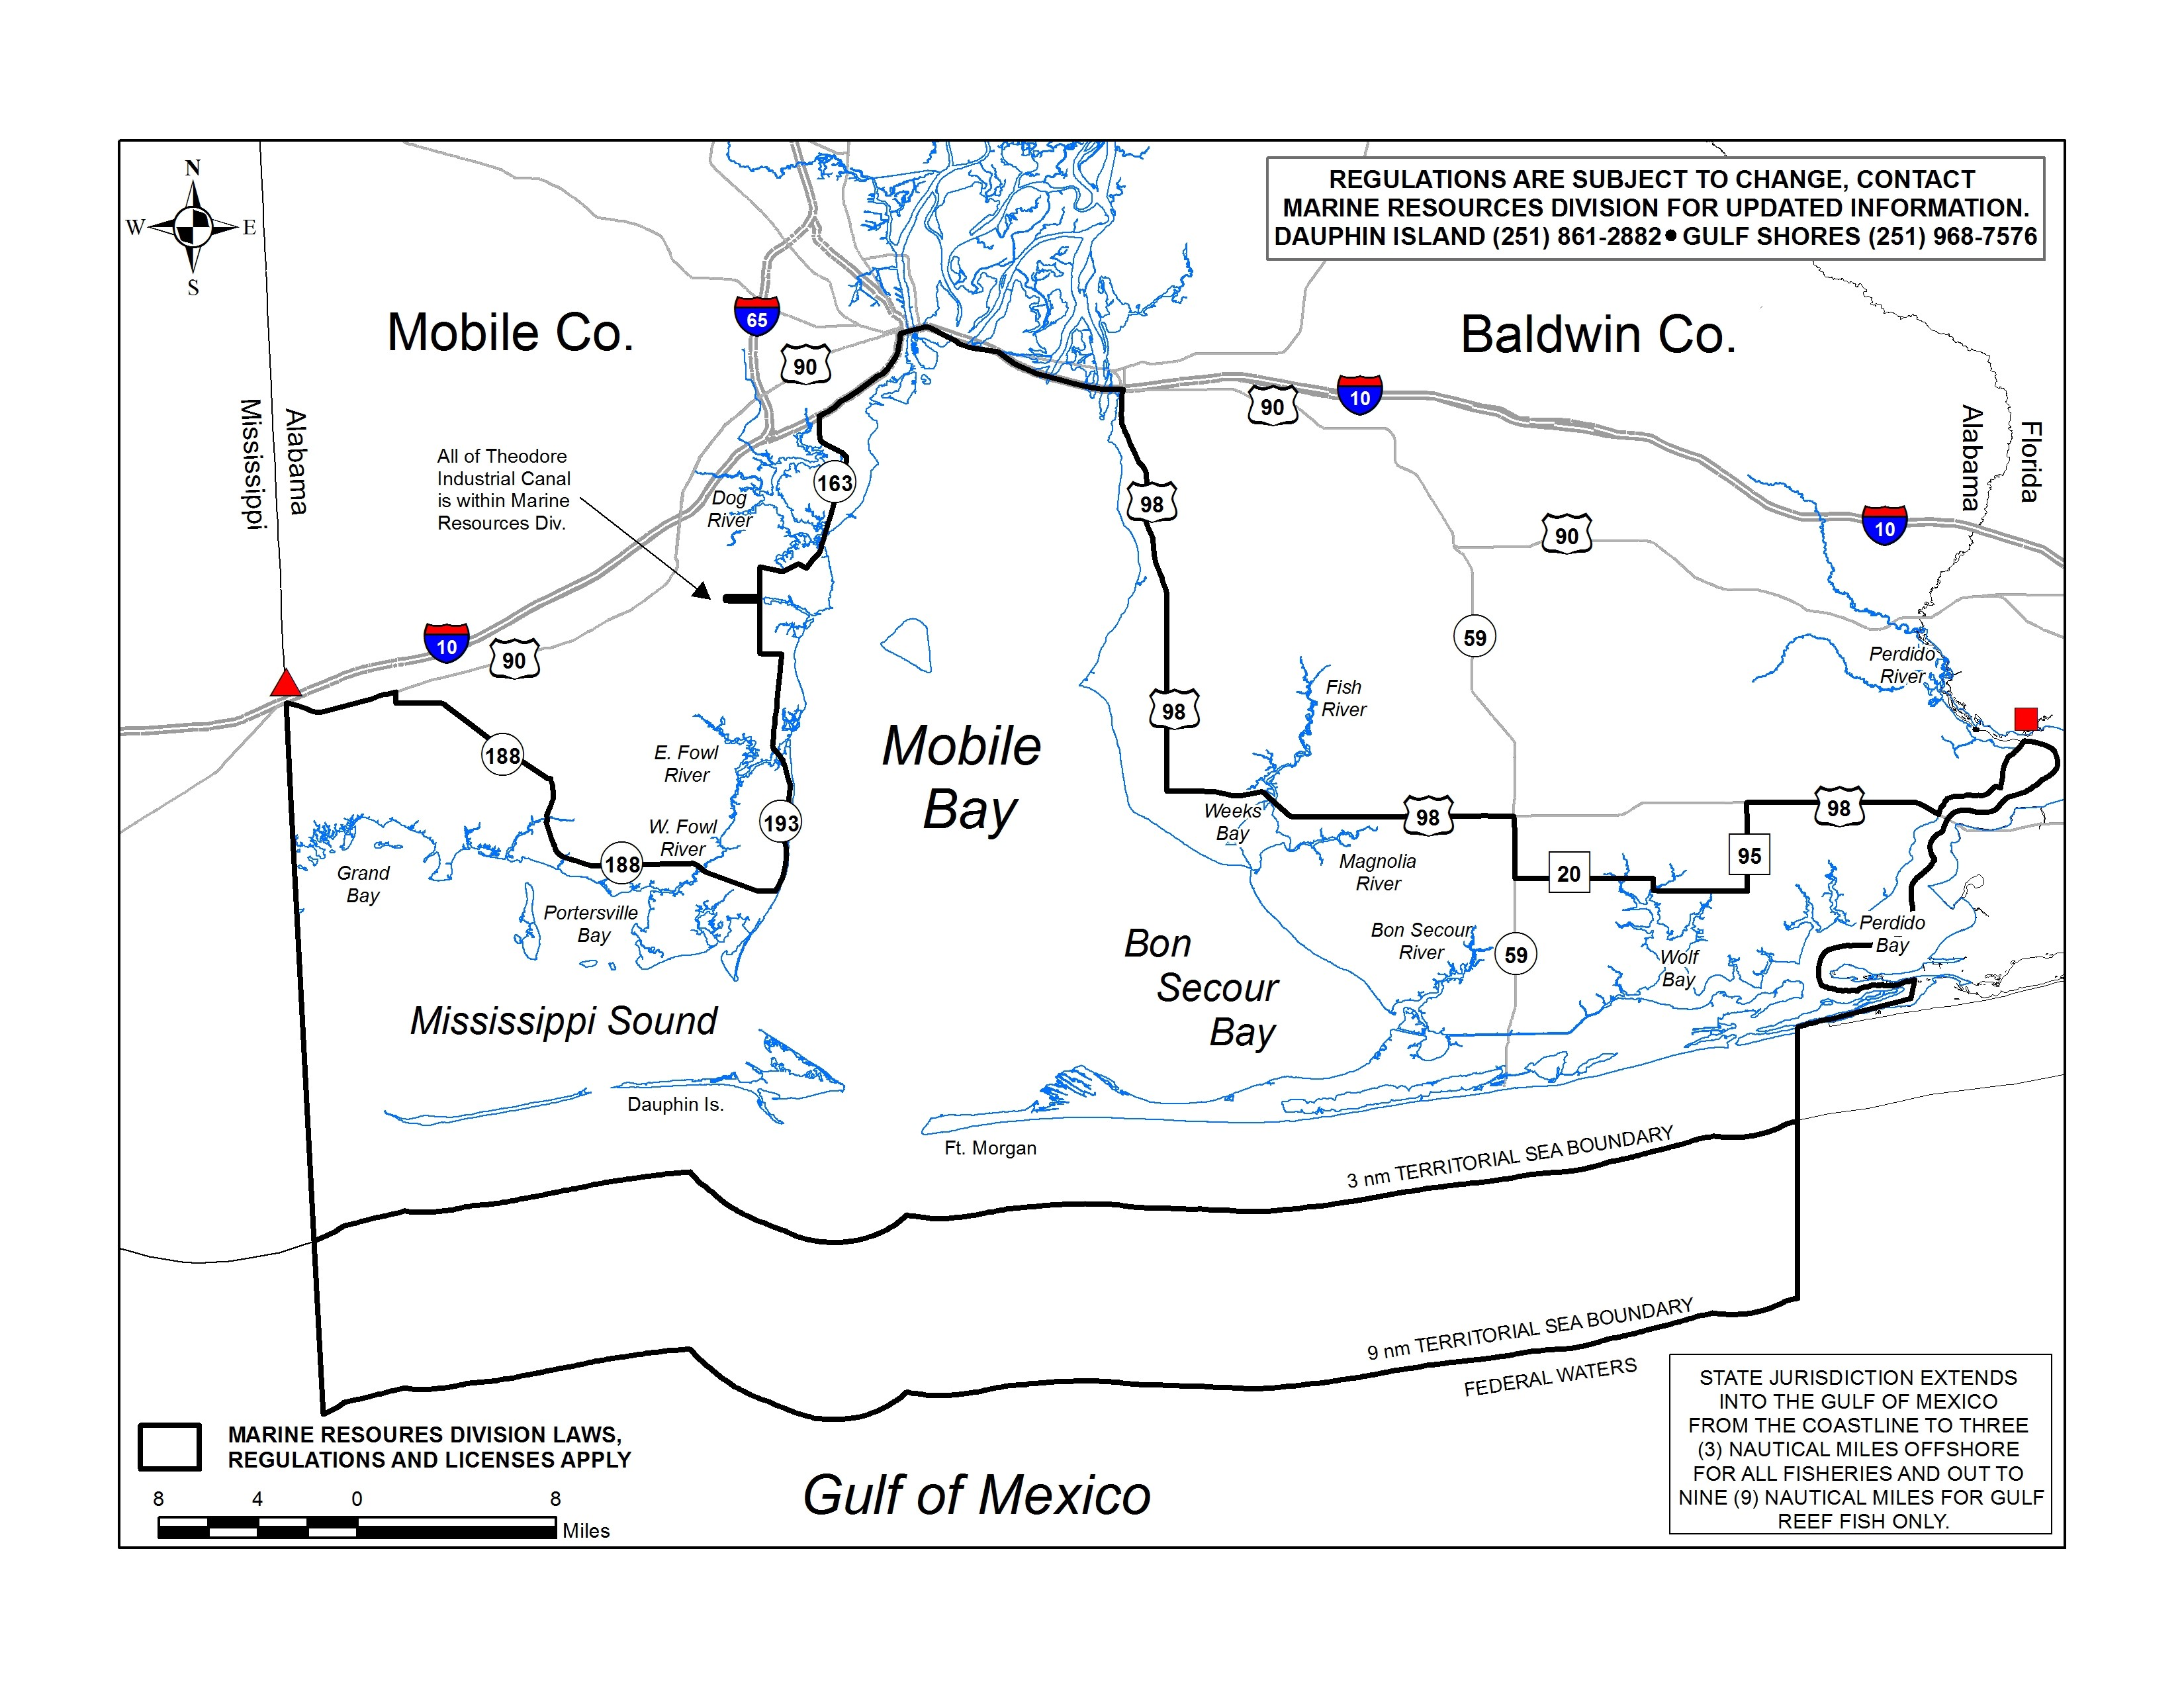 Saltwater freshwater license boundary outdoor alabama for Alabama lifetime hunting and fishing license